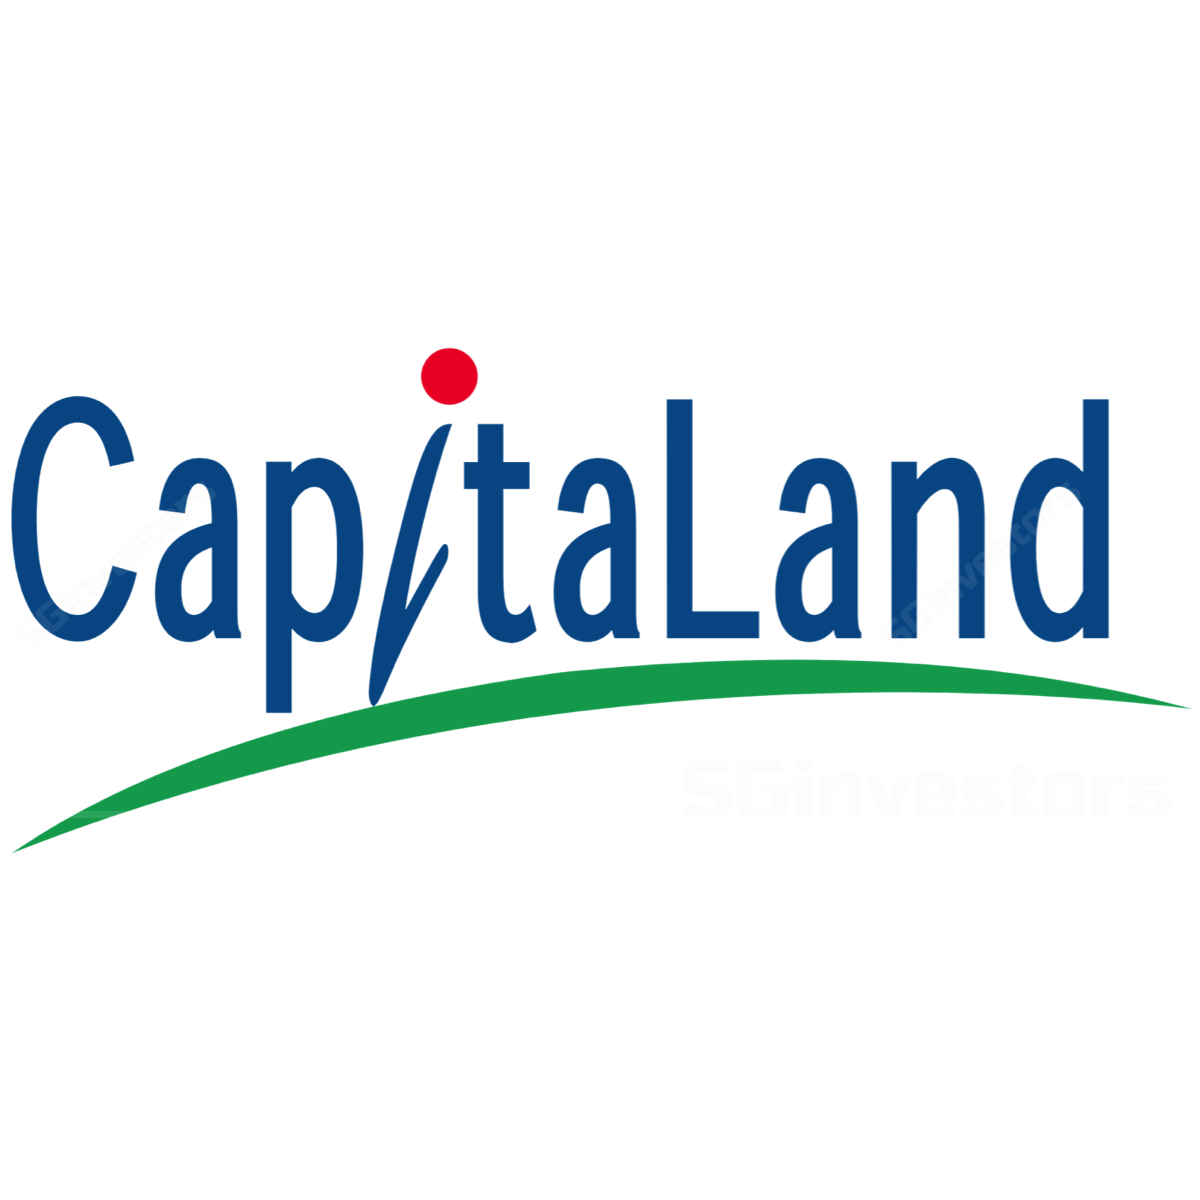 CapitaLand - DBS Vickers 2016-11-25: Good morning, Vietnam, Guangzhou and Shenzhen!